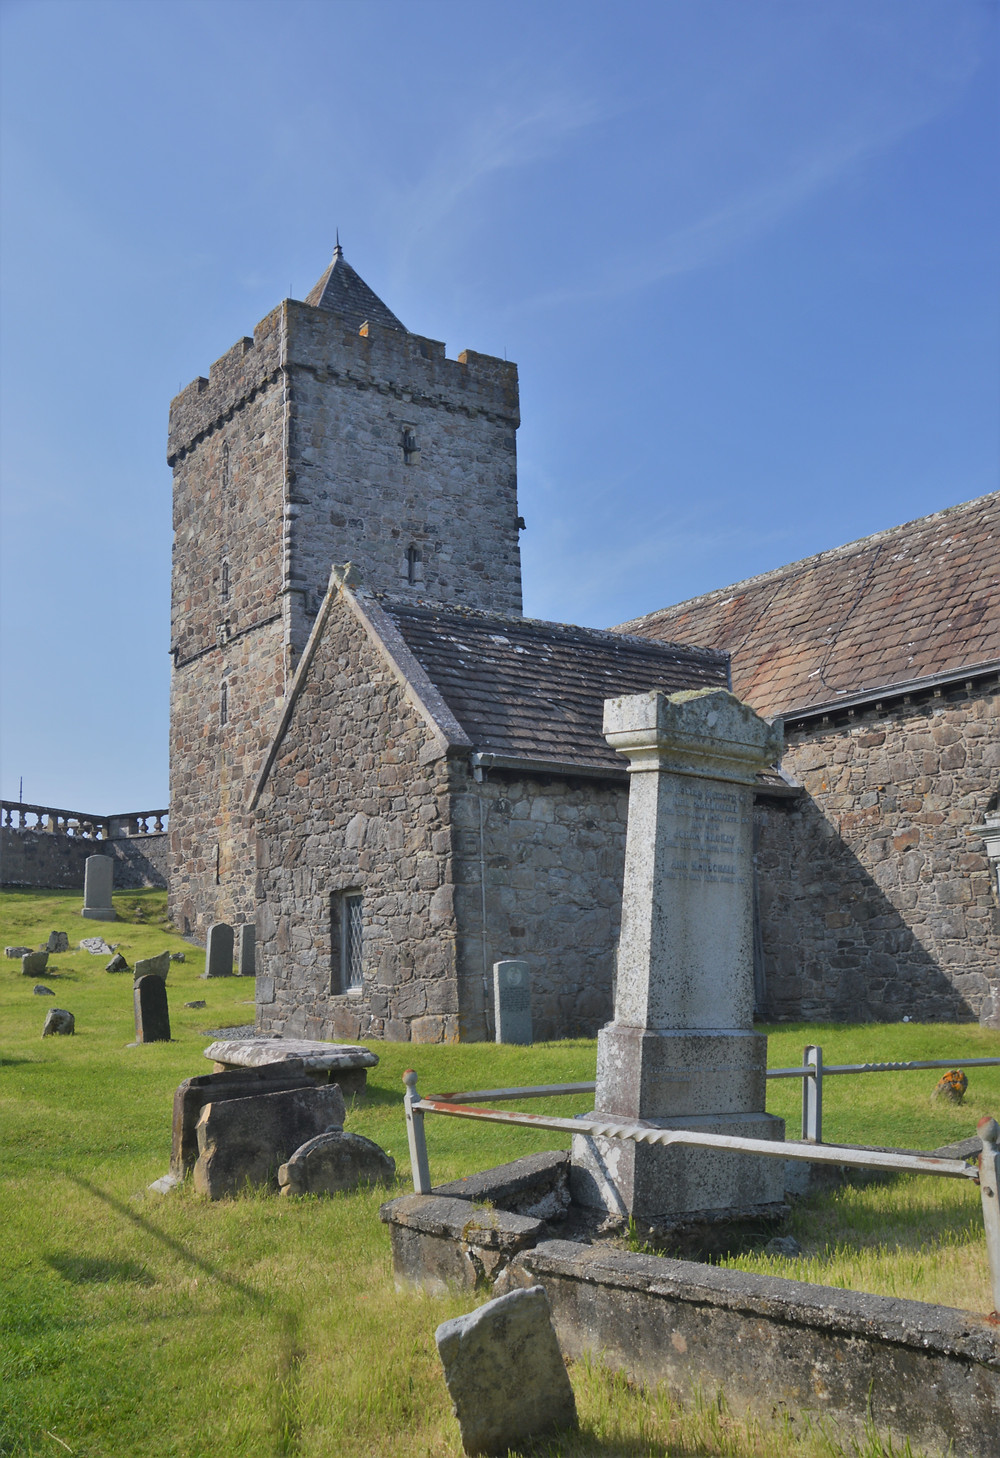 Cemetery on the grounds of St. Clement's Church in the village of Rodel on Lewis and Harris in the Outer Hebrides